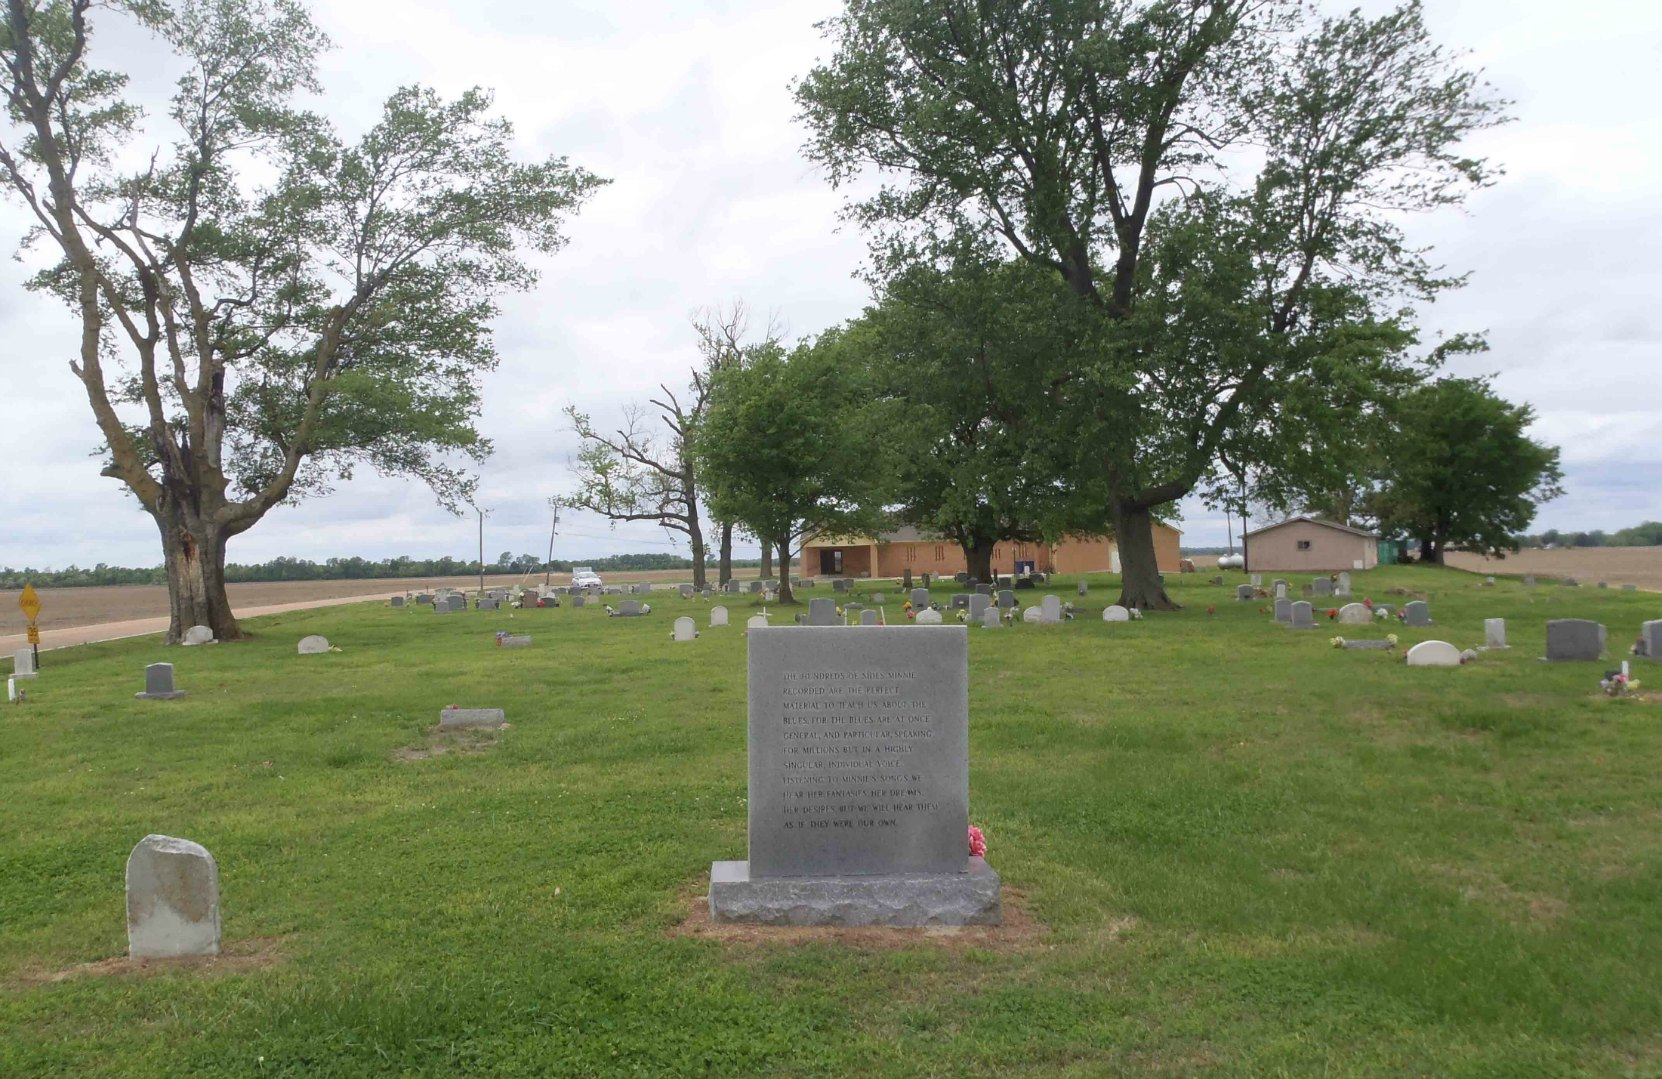 Memphis Minnie's gravestone, New Hope Baptist Church, Walls, Mississippi